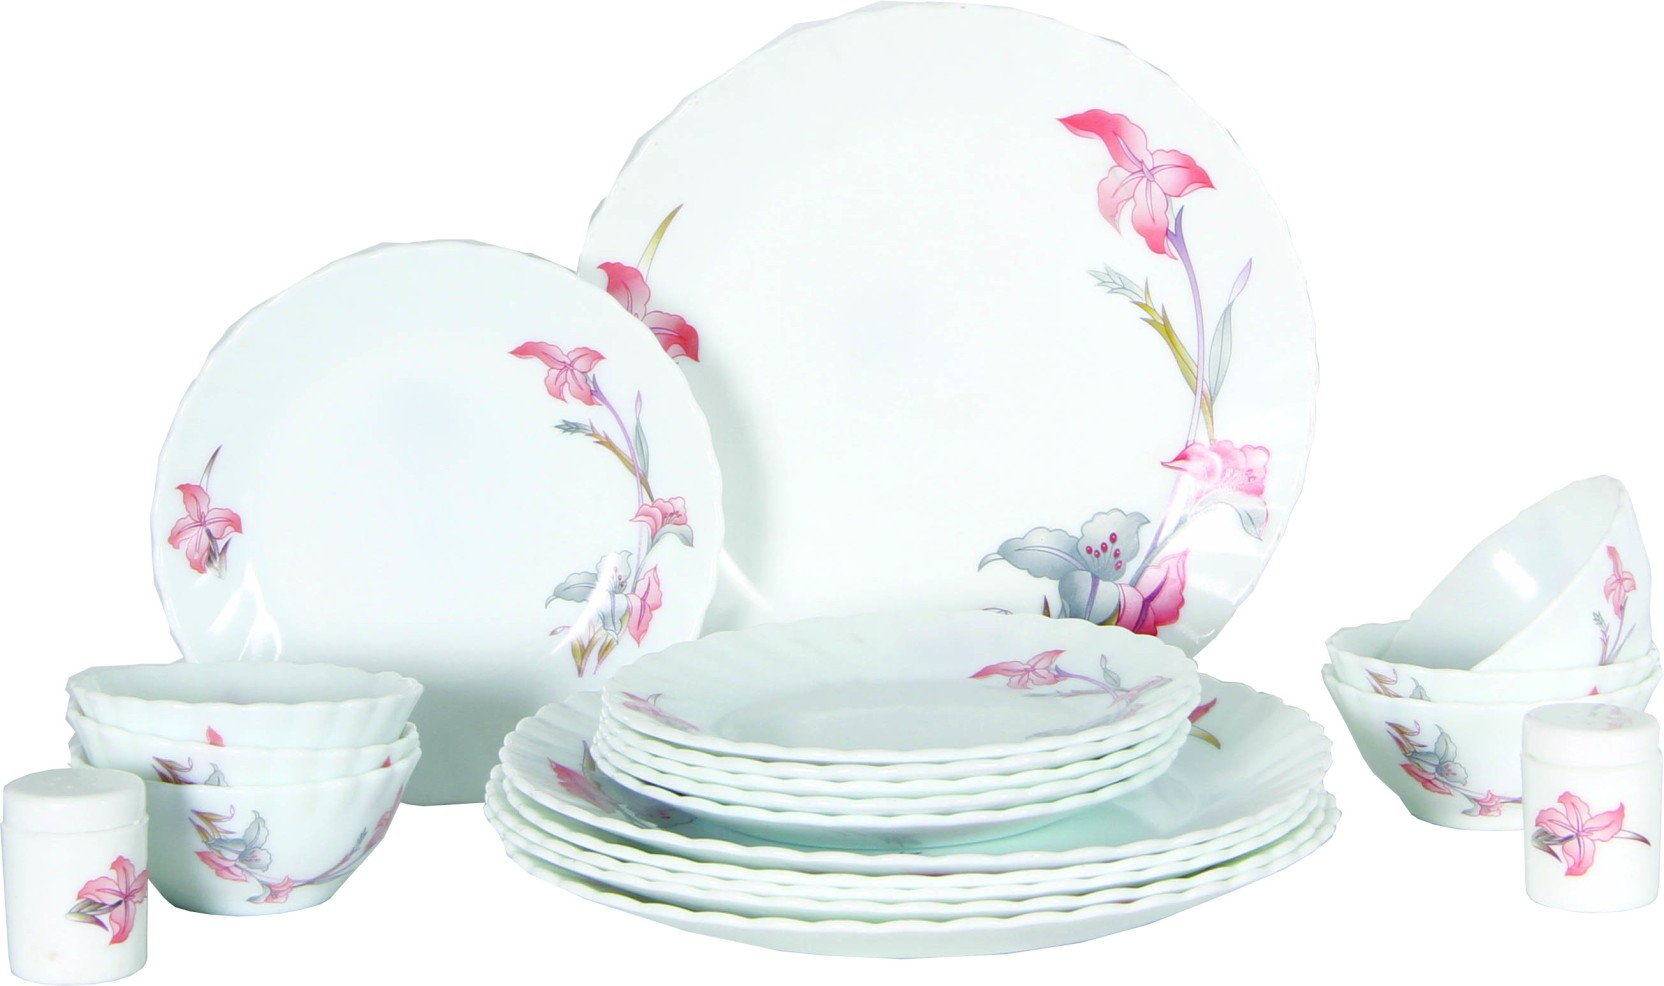 Laopala pack of 20 dinner set price in india buy laopala for Kitchen set on flipkart